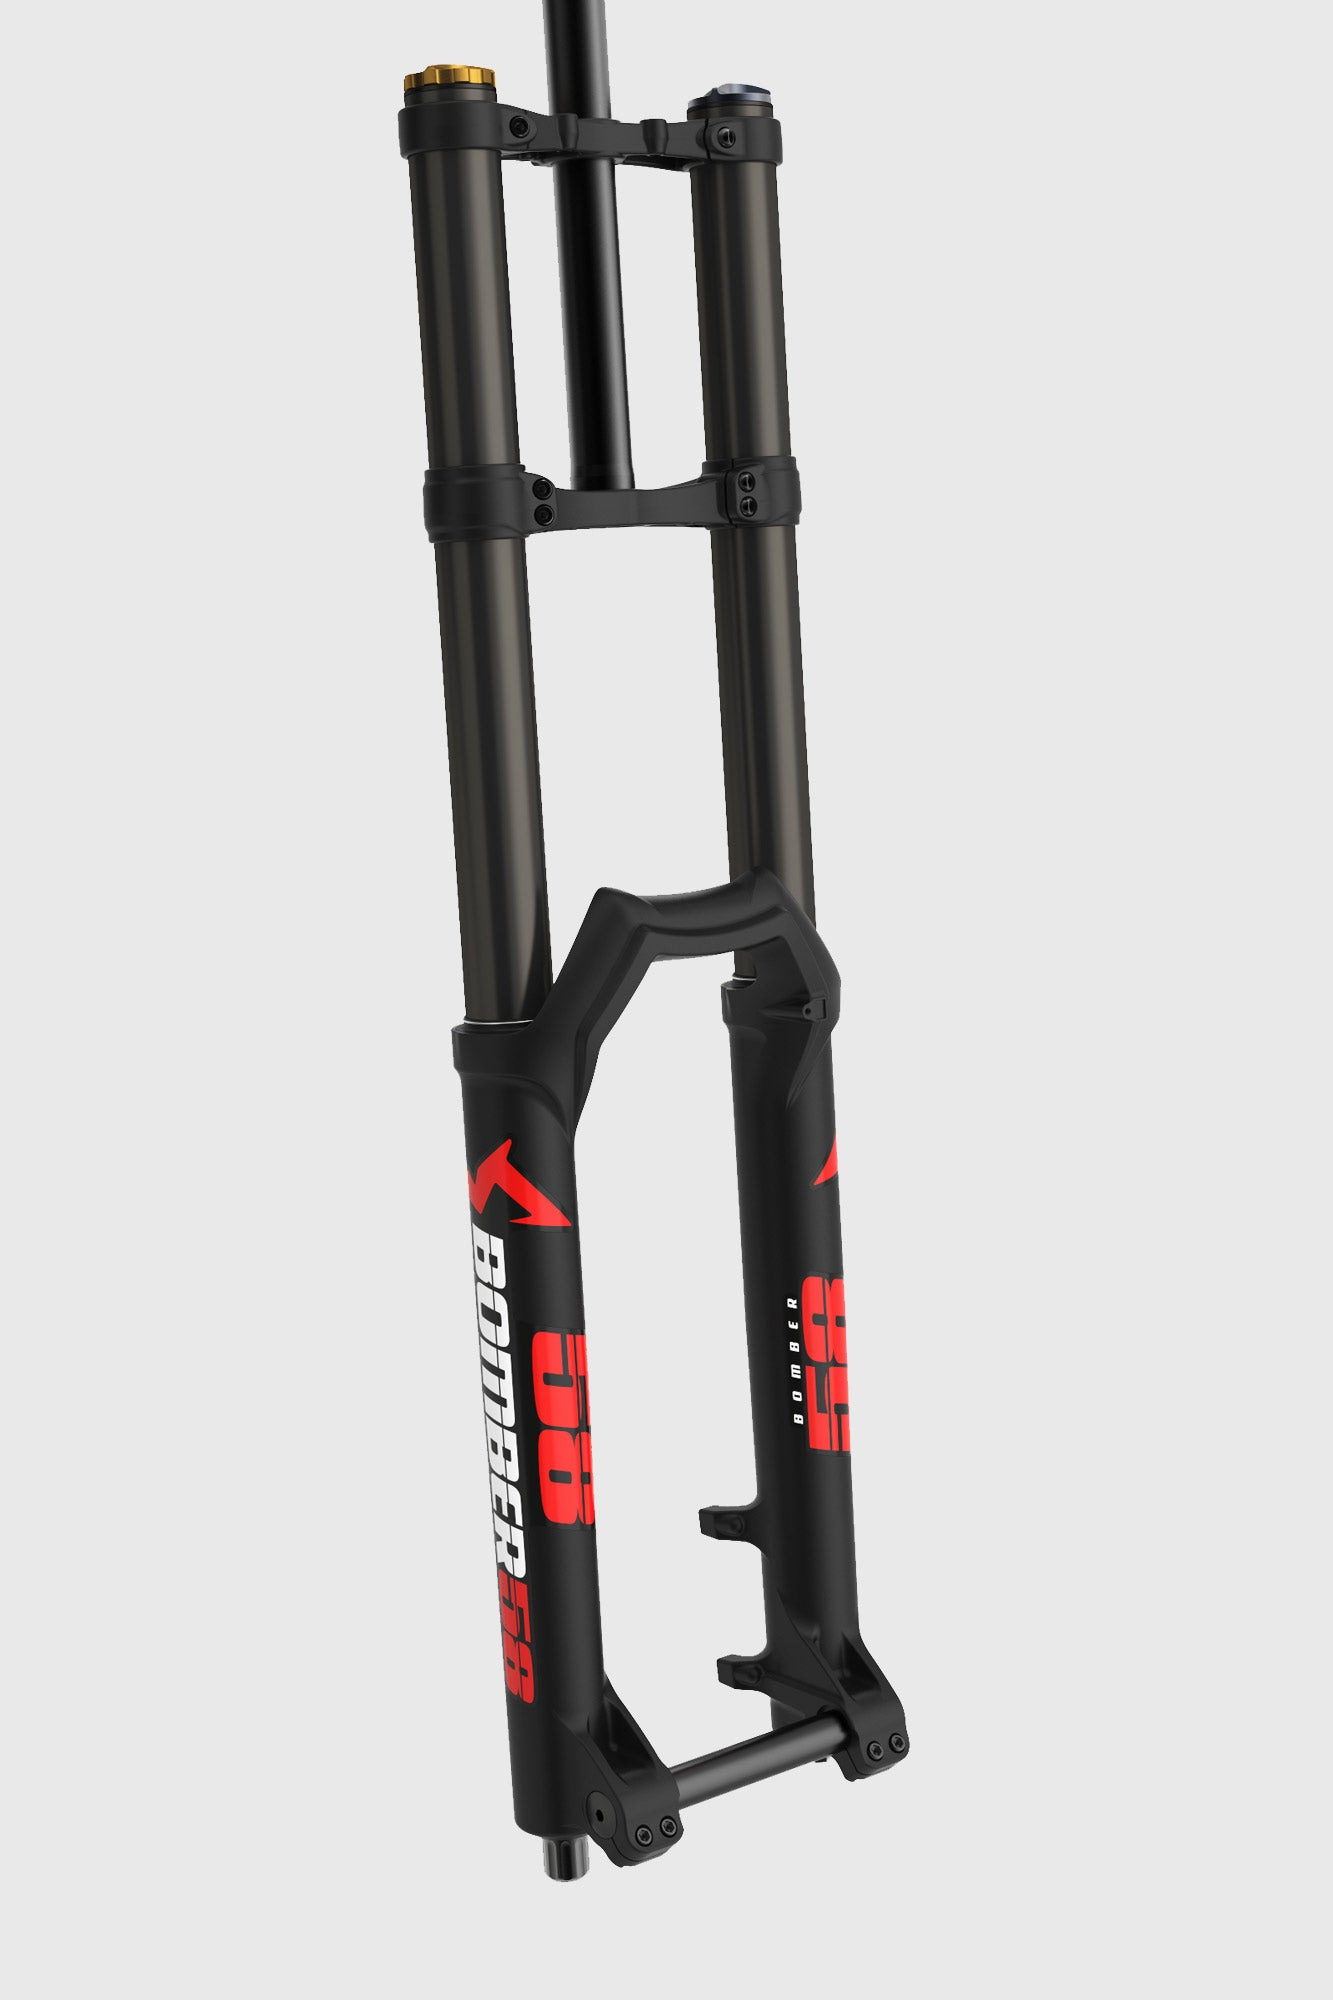 Marzocchi Bomber 58 GRIP FIT 27 5 Fork 2019 - Black